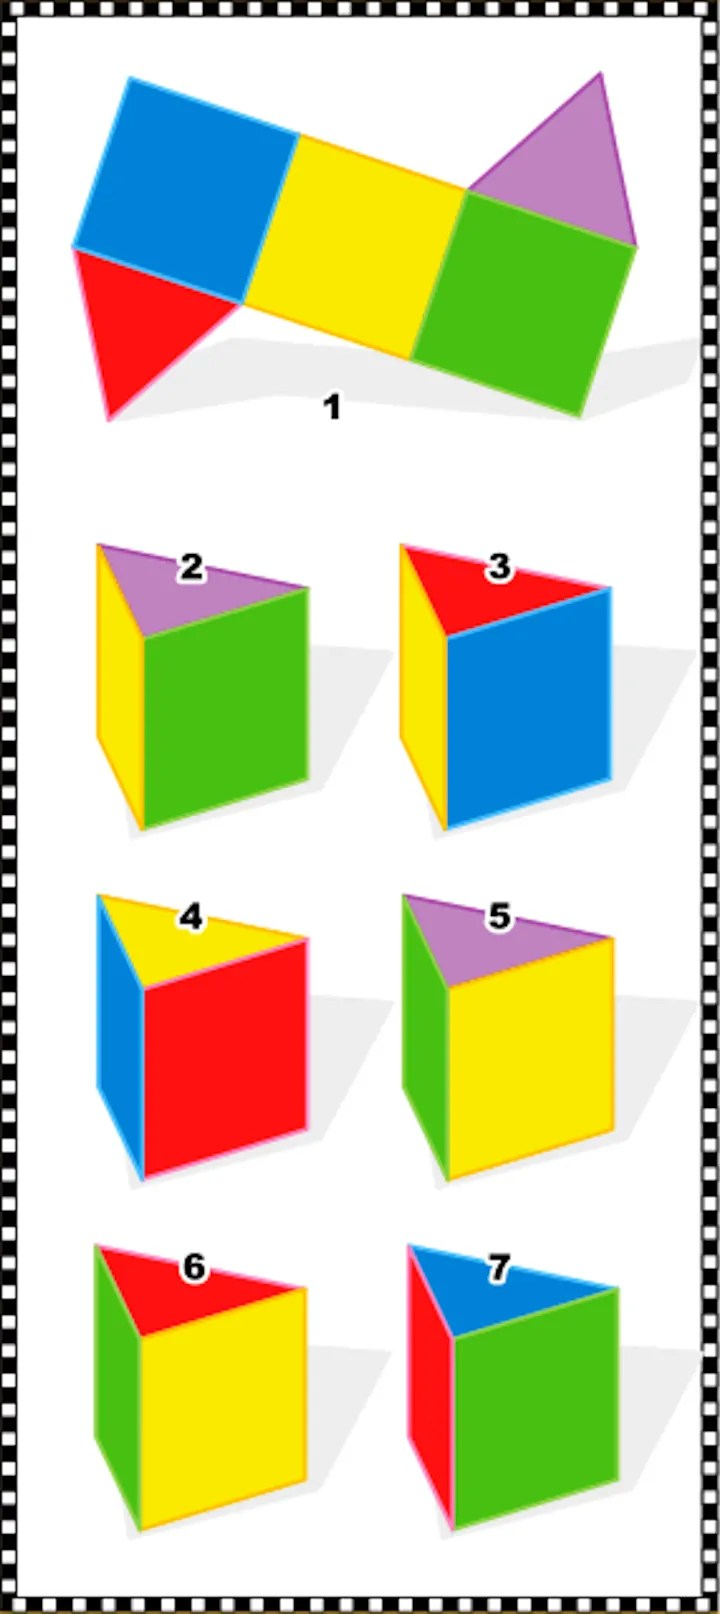 hight resolution of Spatial Intelligence - What it is \u0026 13 ways to improve it